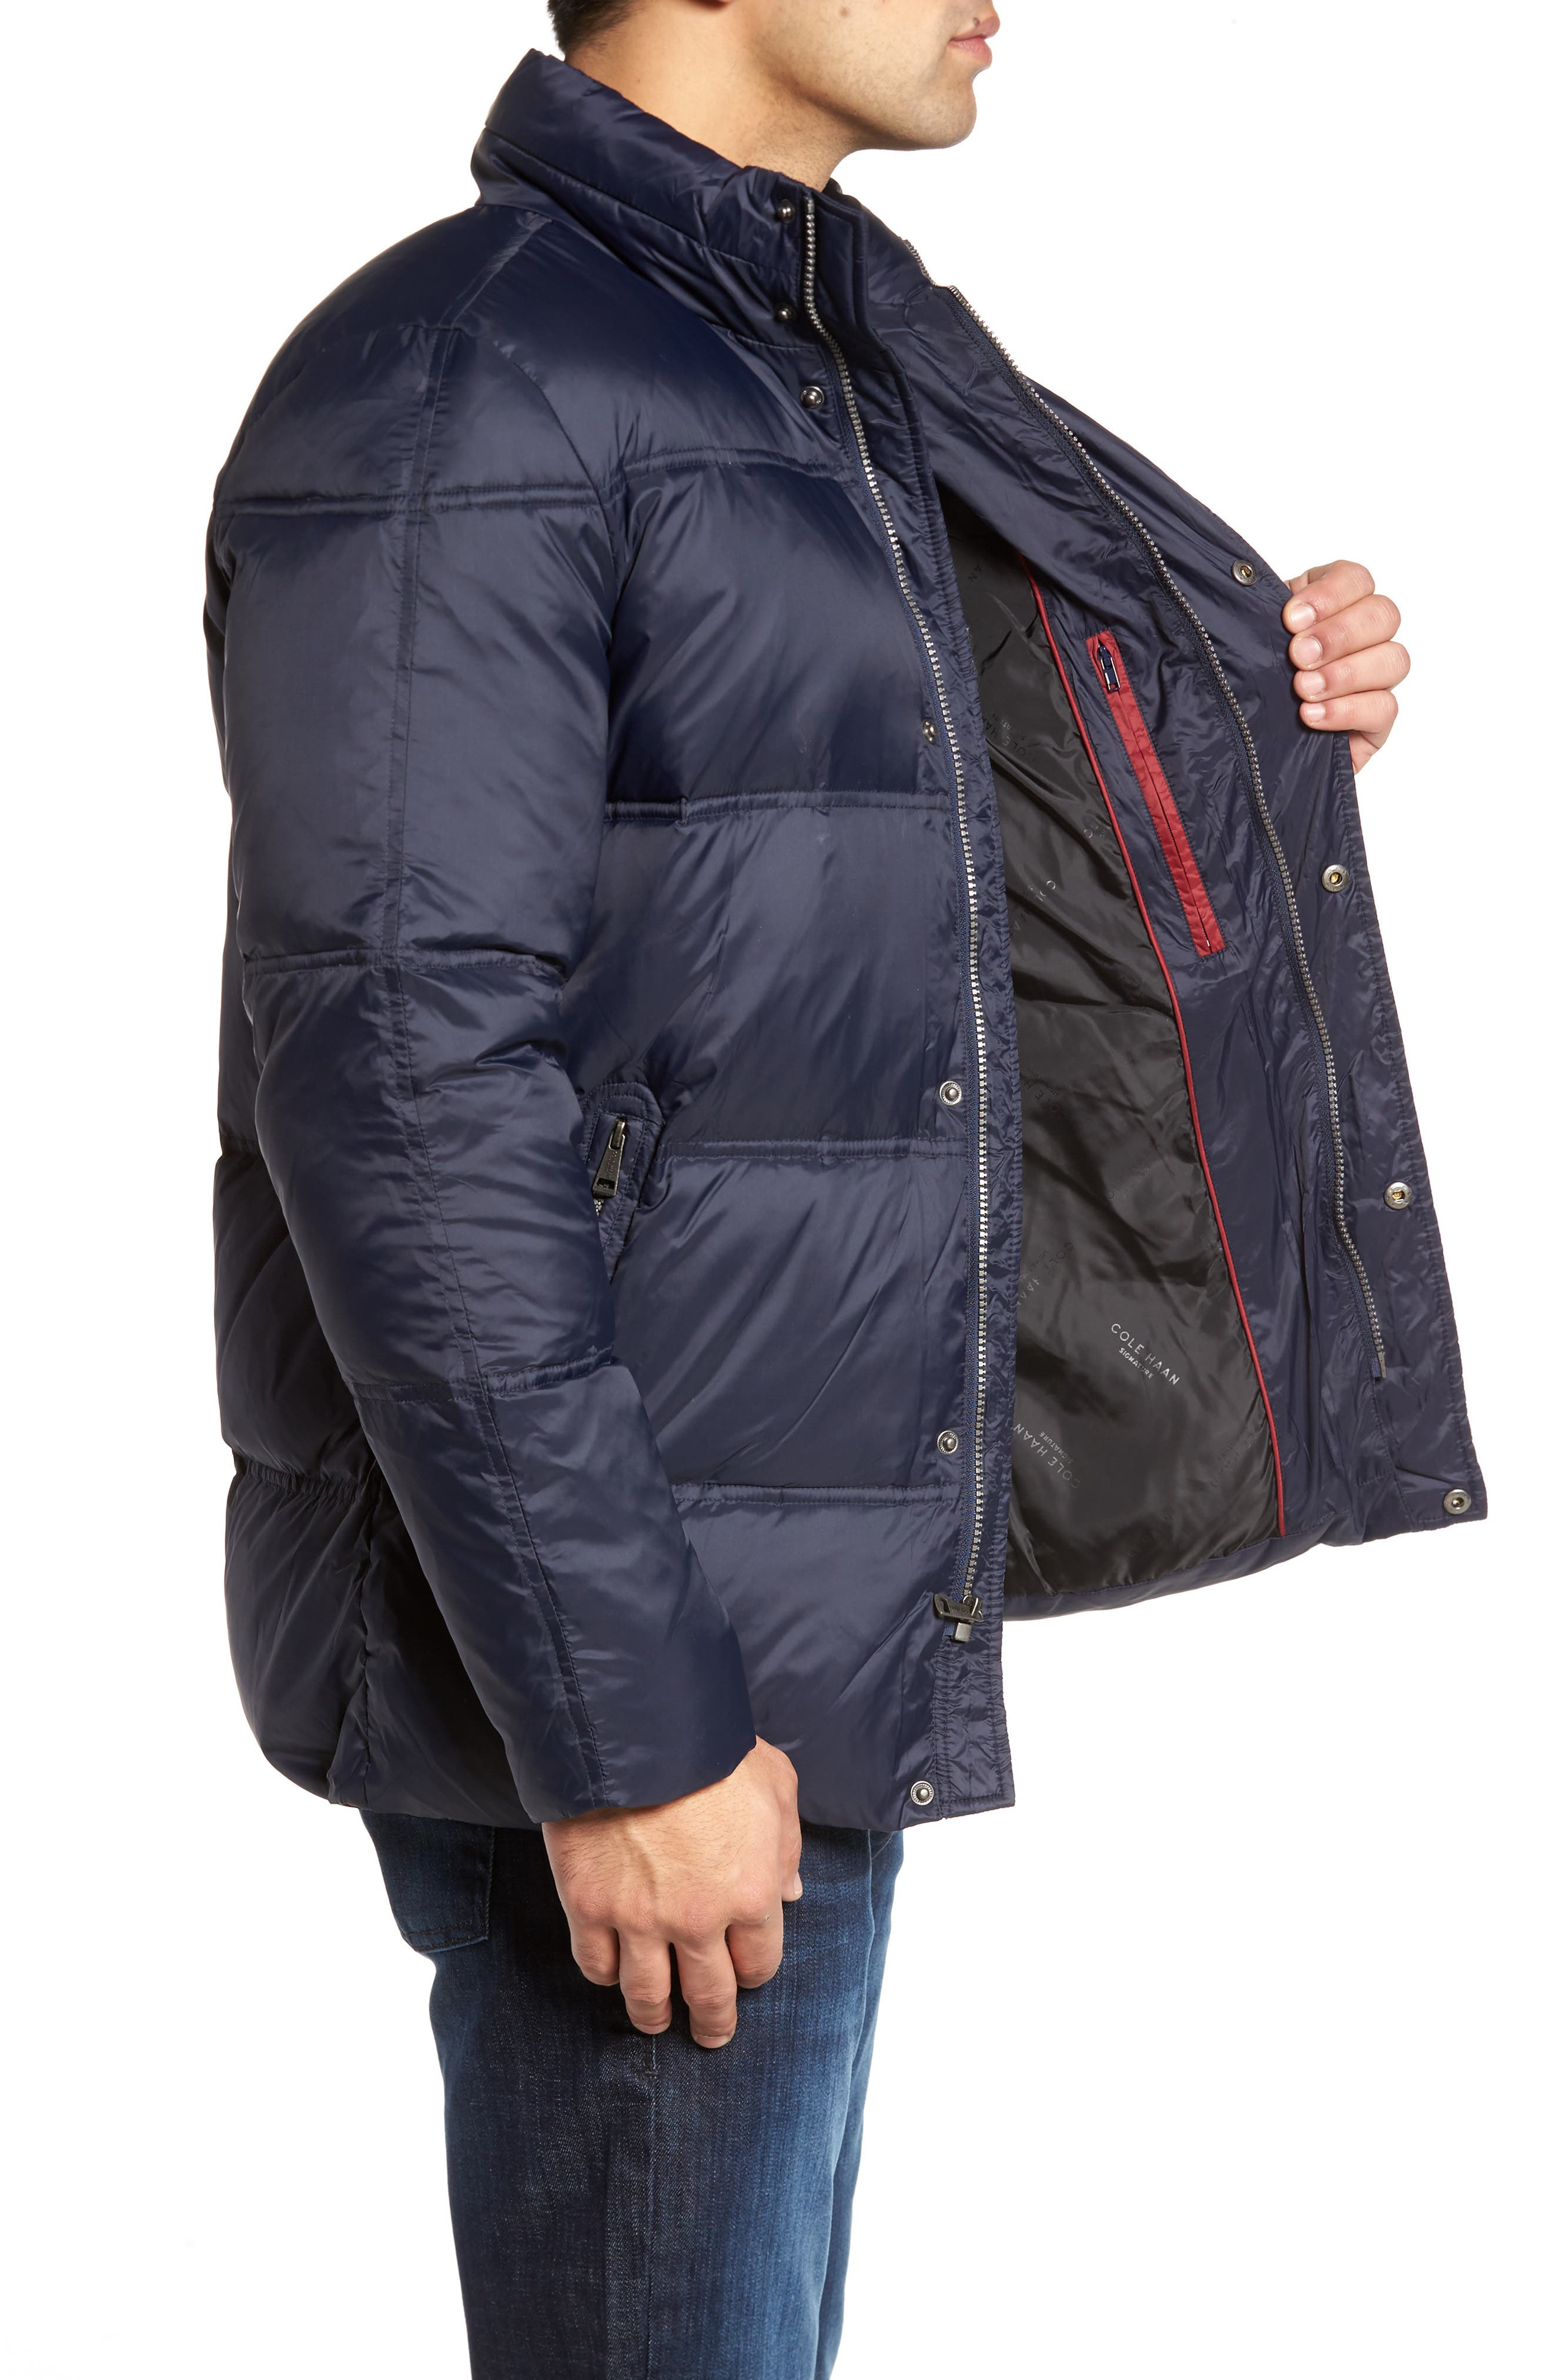 Quilted Jacket with Convertible Neck Pillow,                             Alternate thumbnail 3, color,                             NAVY